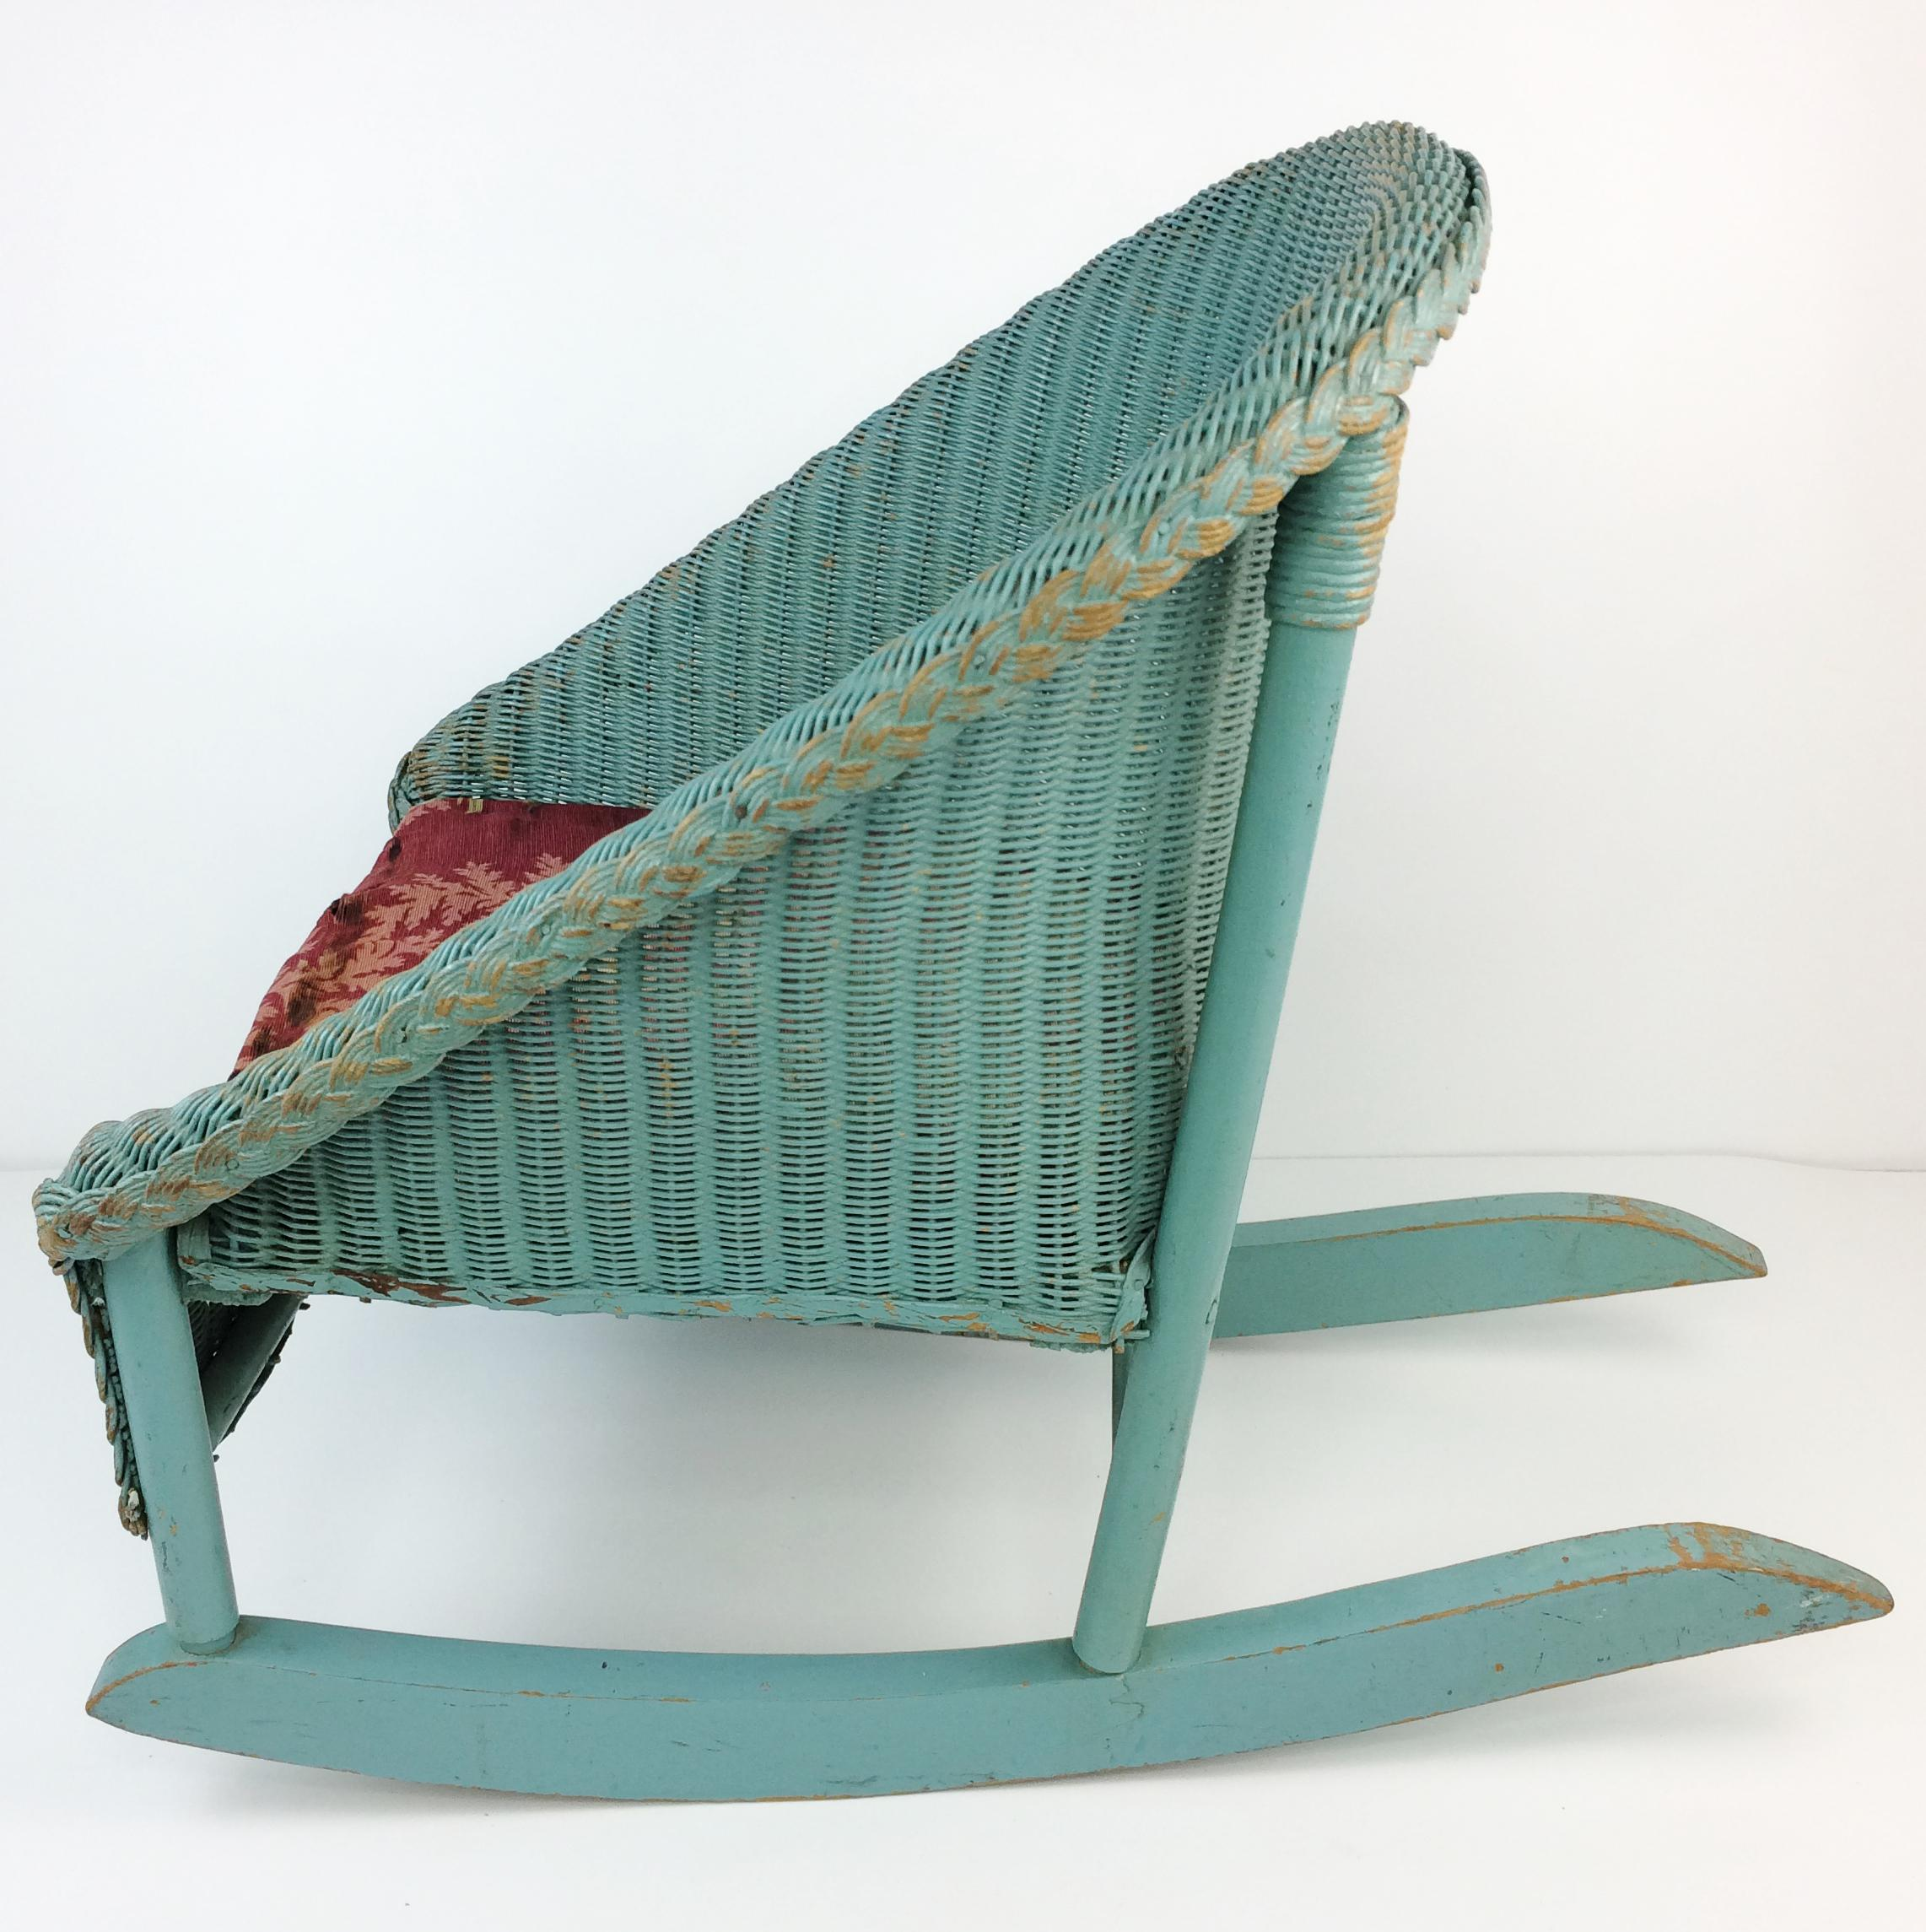 vintage wicker rocking chair bergere chairs lloyd loom antique chairish for sale image 5 of 8